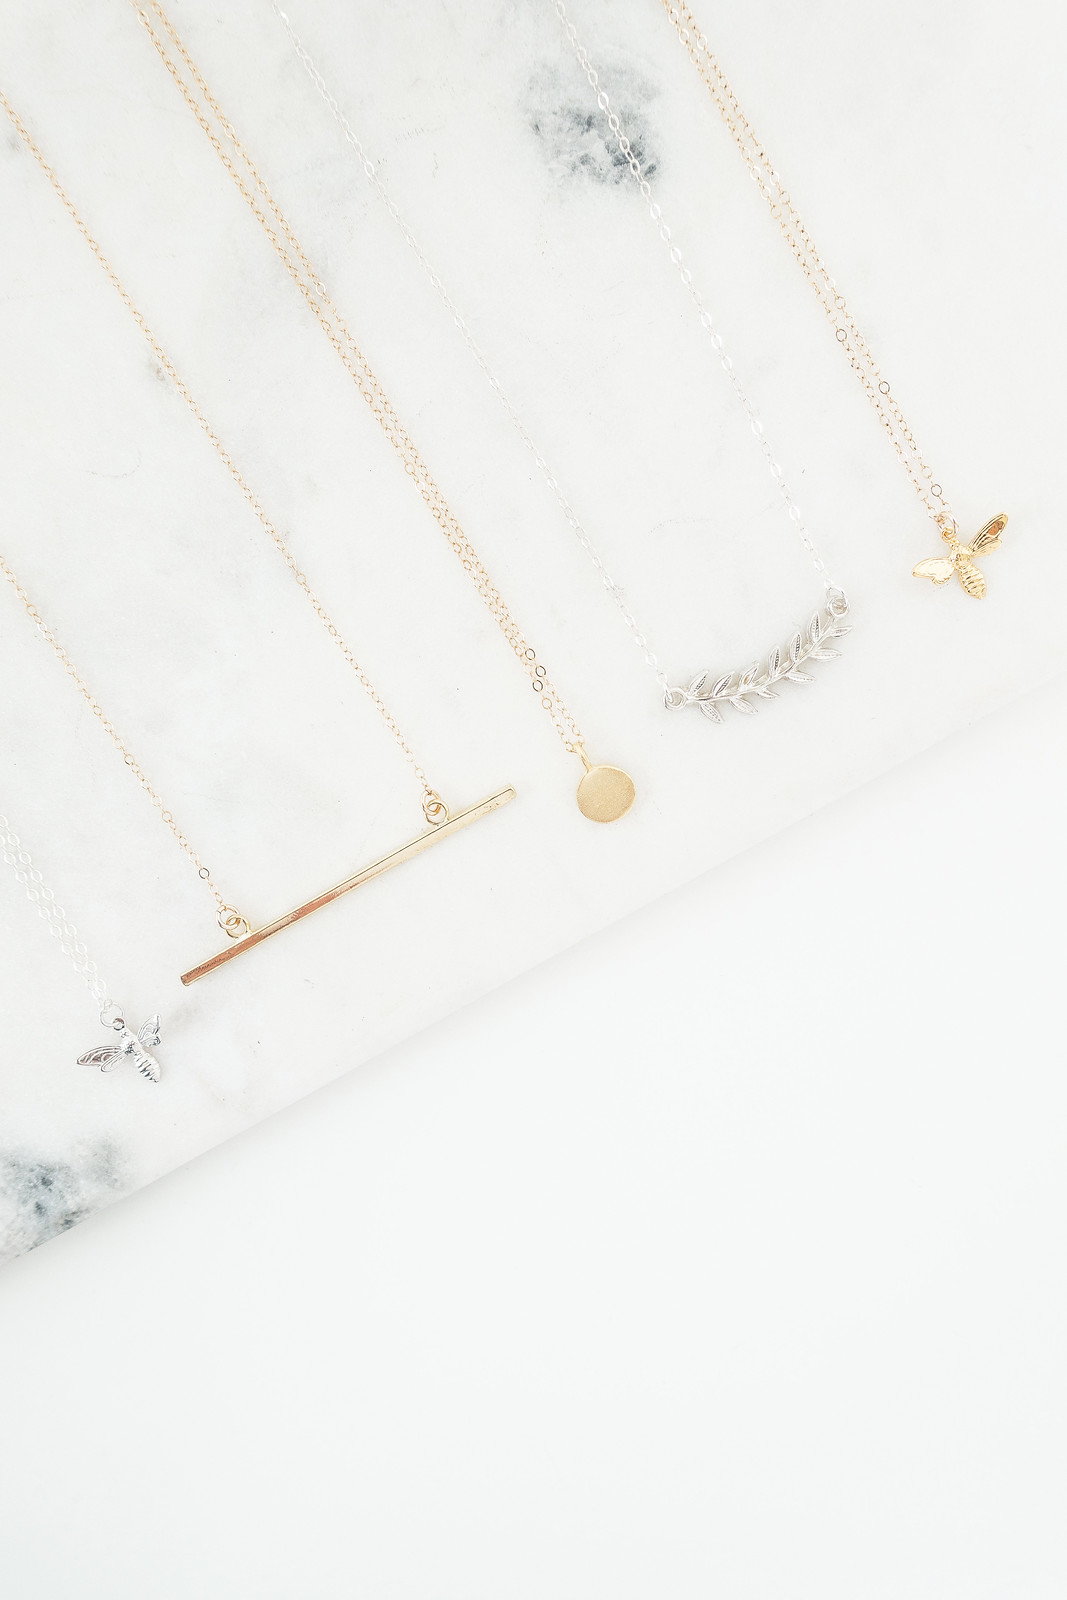 Everyday Jewellery That's Perfect For The Office Party